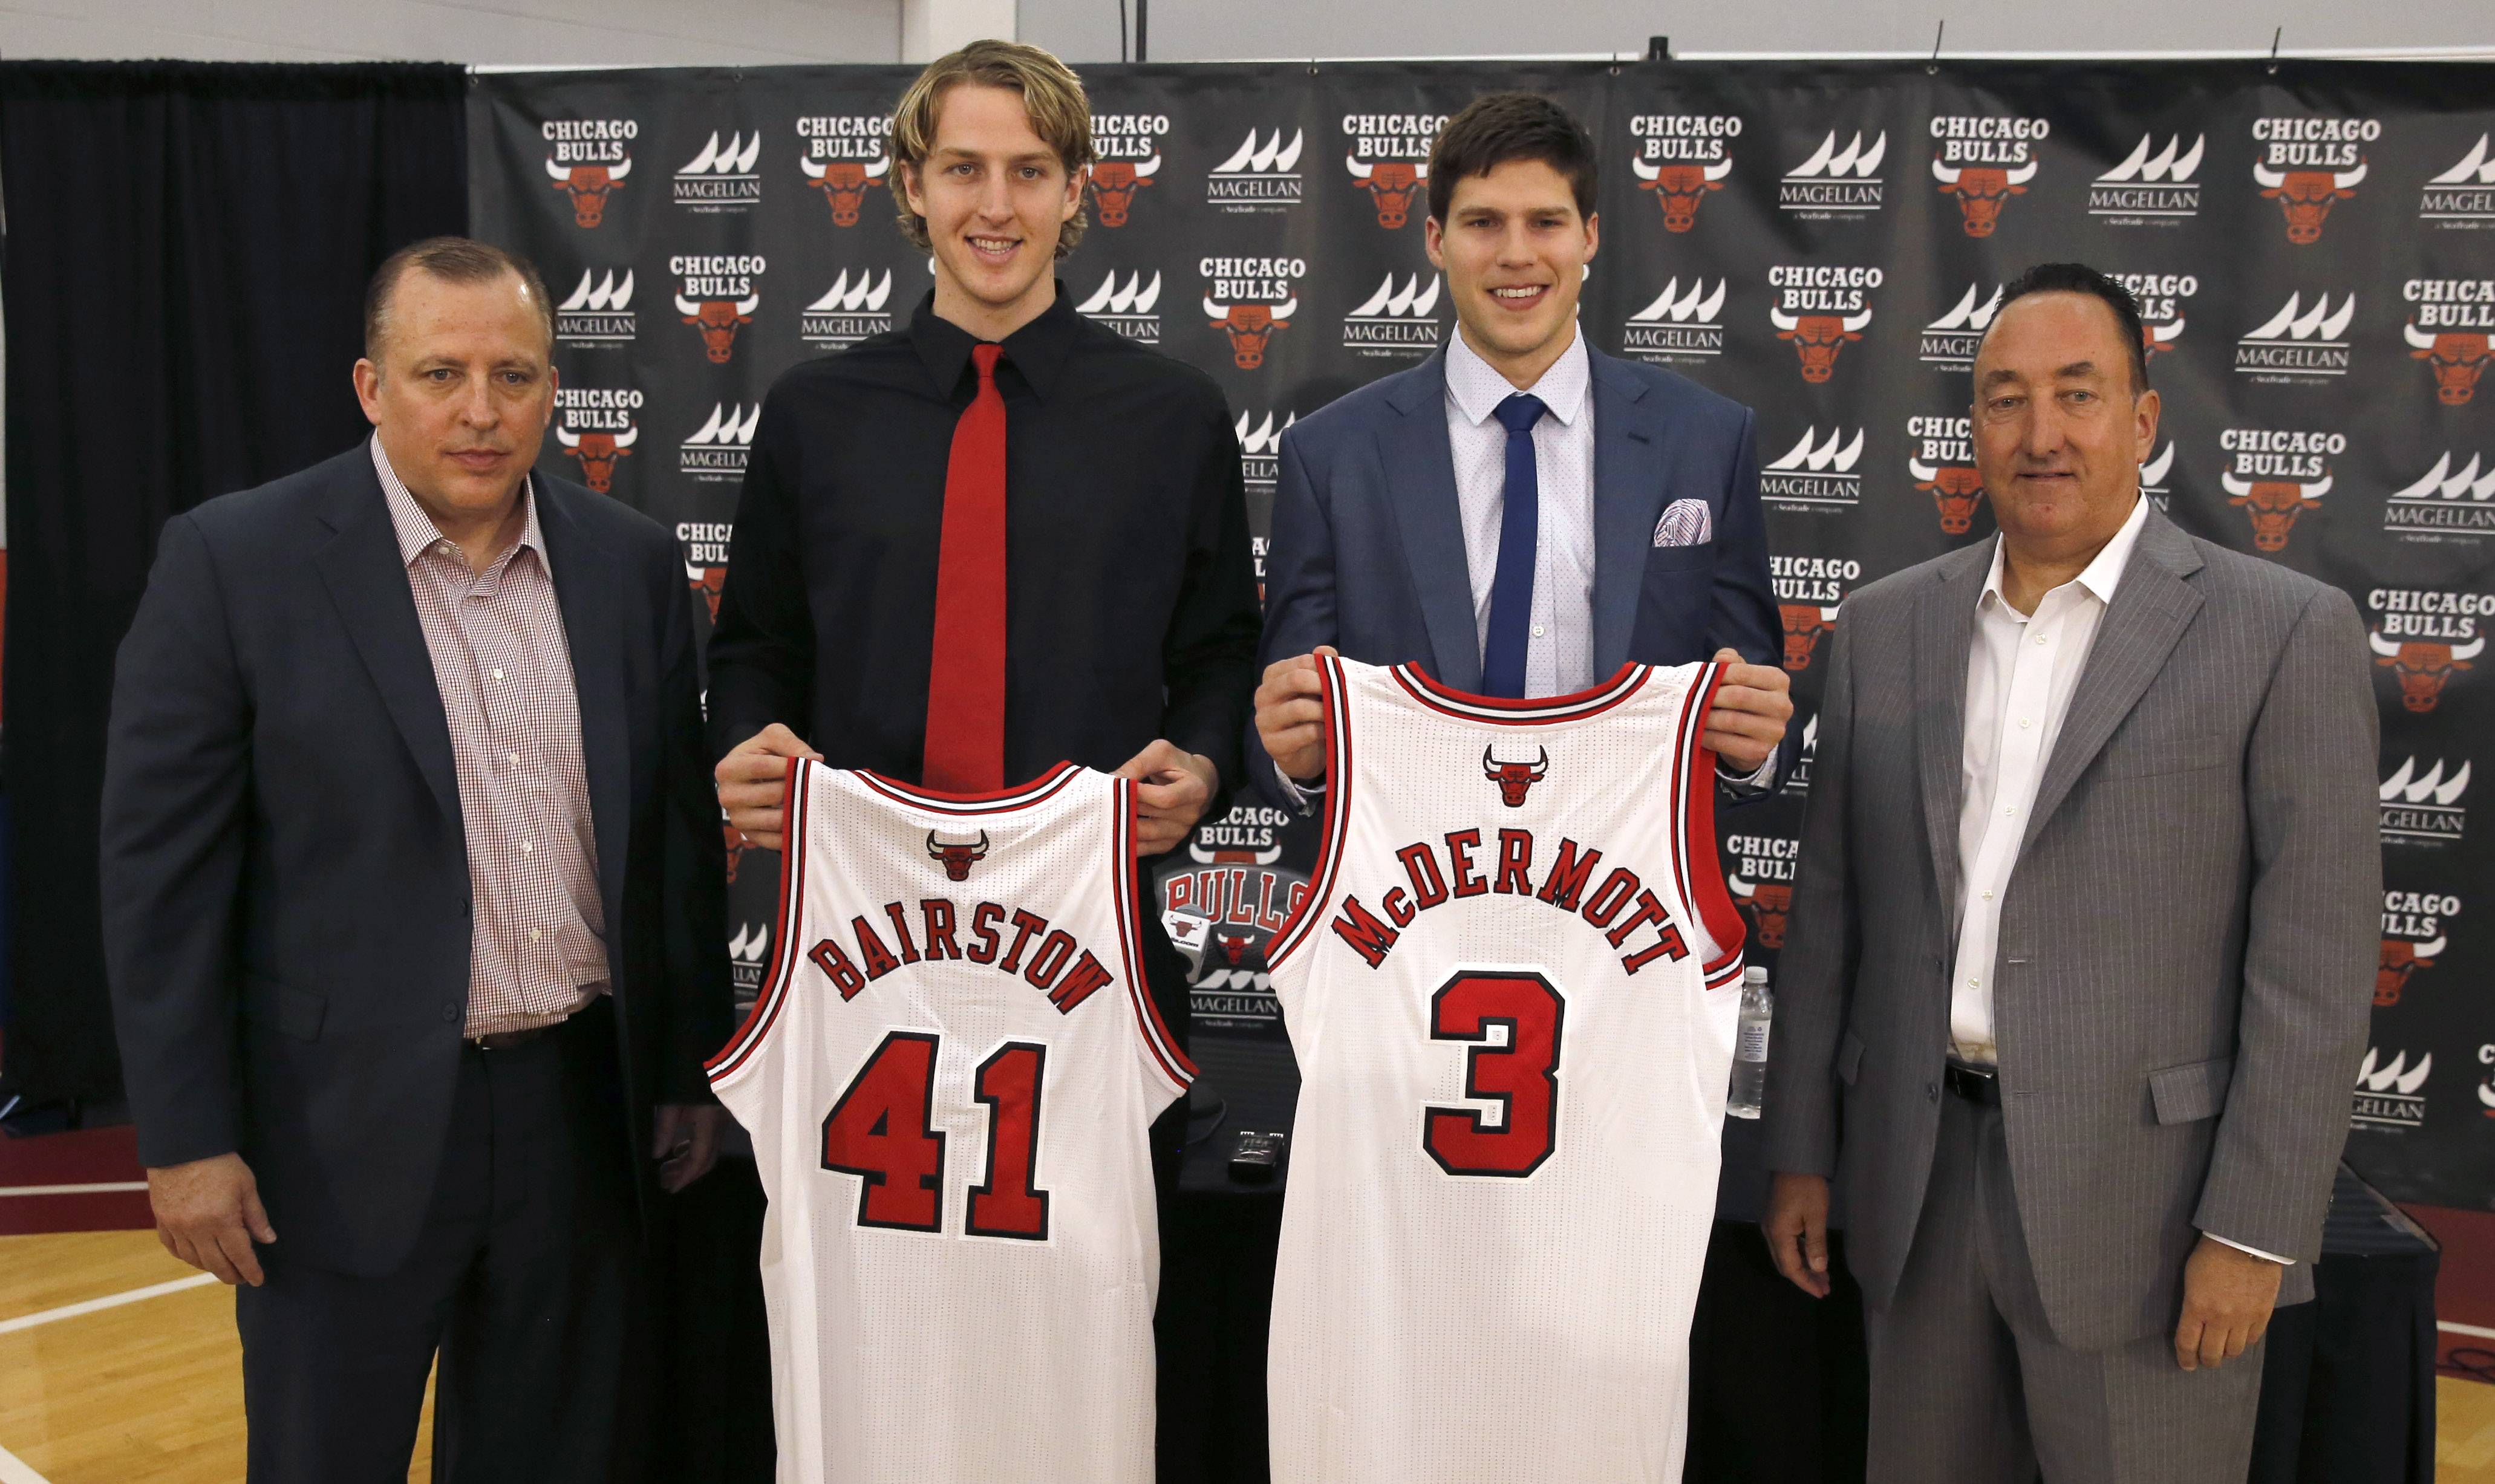 Bulls coach Tom Thibodeau, far left, and general manager Gar Forman, far right, stand with first- and second-round draft picks Cameron Bairstow (41) and Doug McDermott during a news conference Monday.